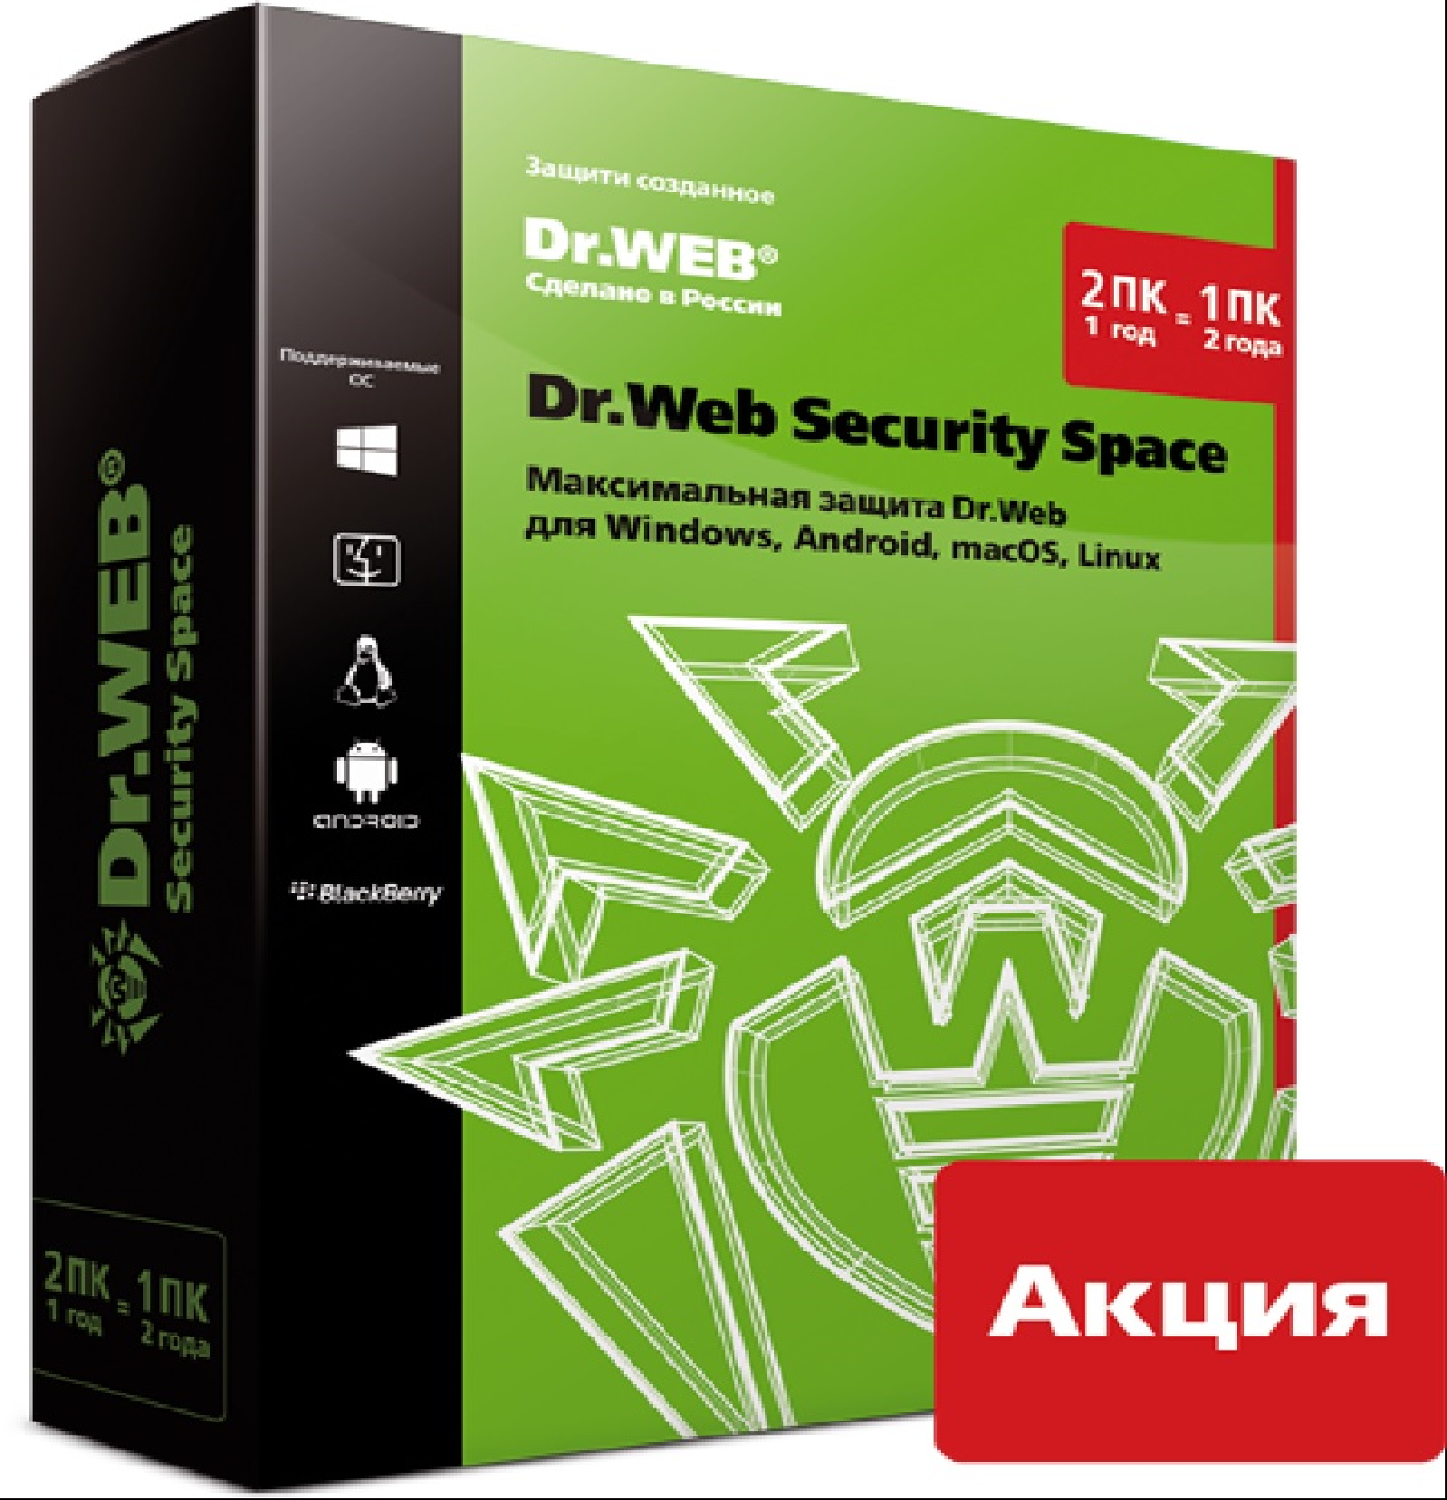 Antivirus Dr Web Security Space, кз, At 12 мес. (+ 3 мес., Promotion) Base 1 License